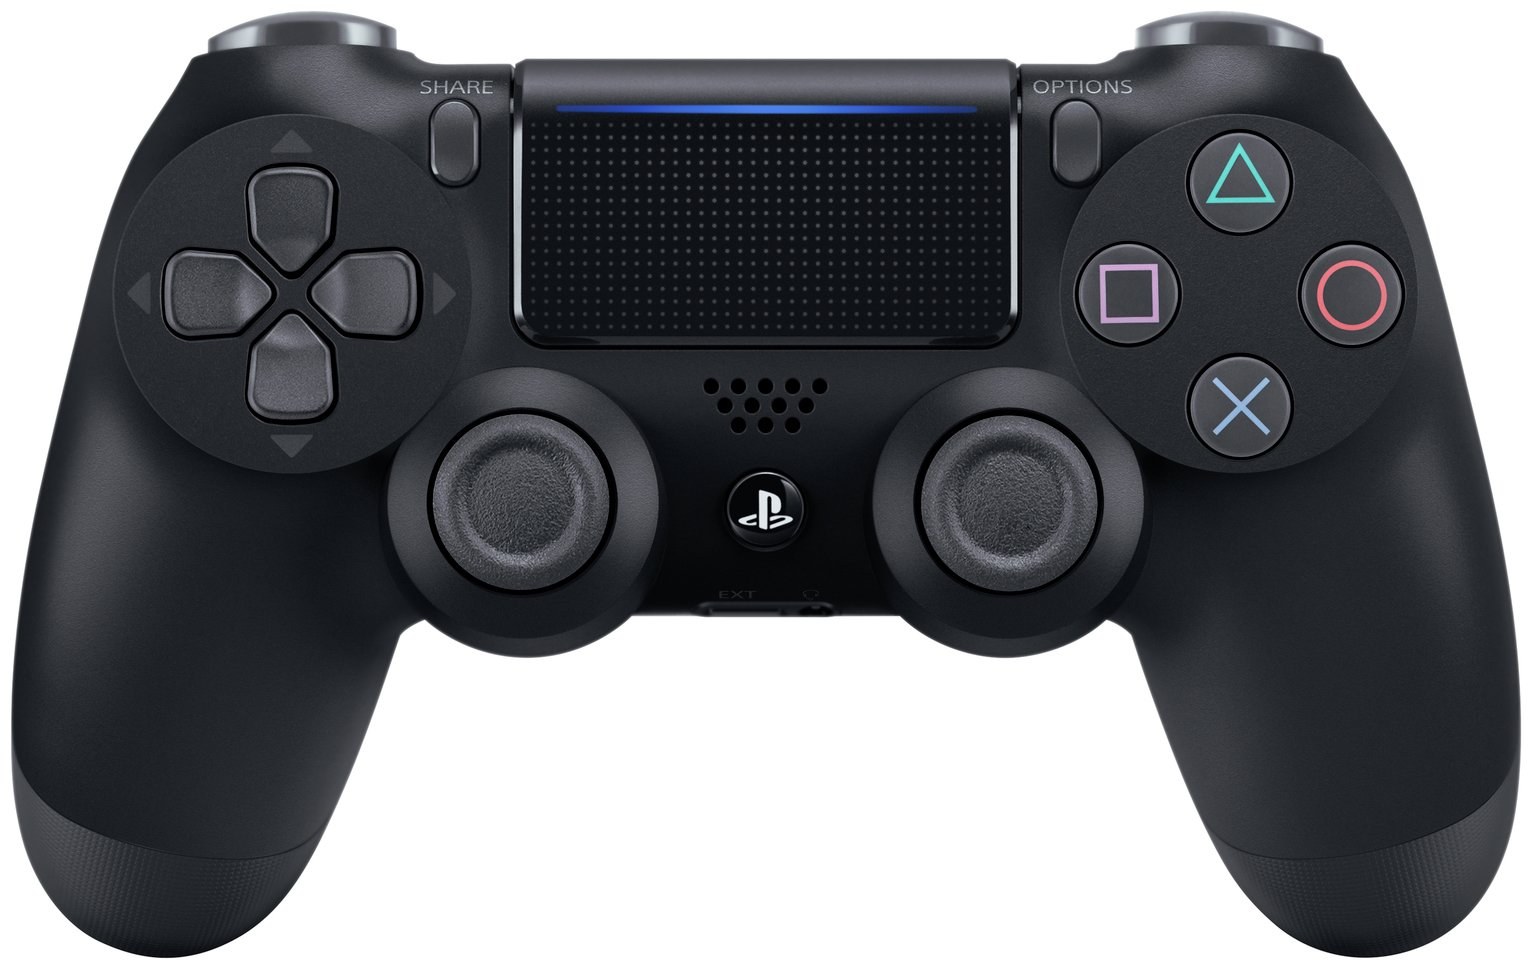 Sony Sony PS4 Official DualShock 4 Controller V2 - Black.